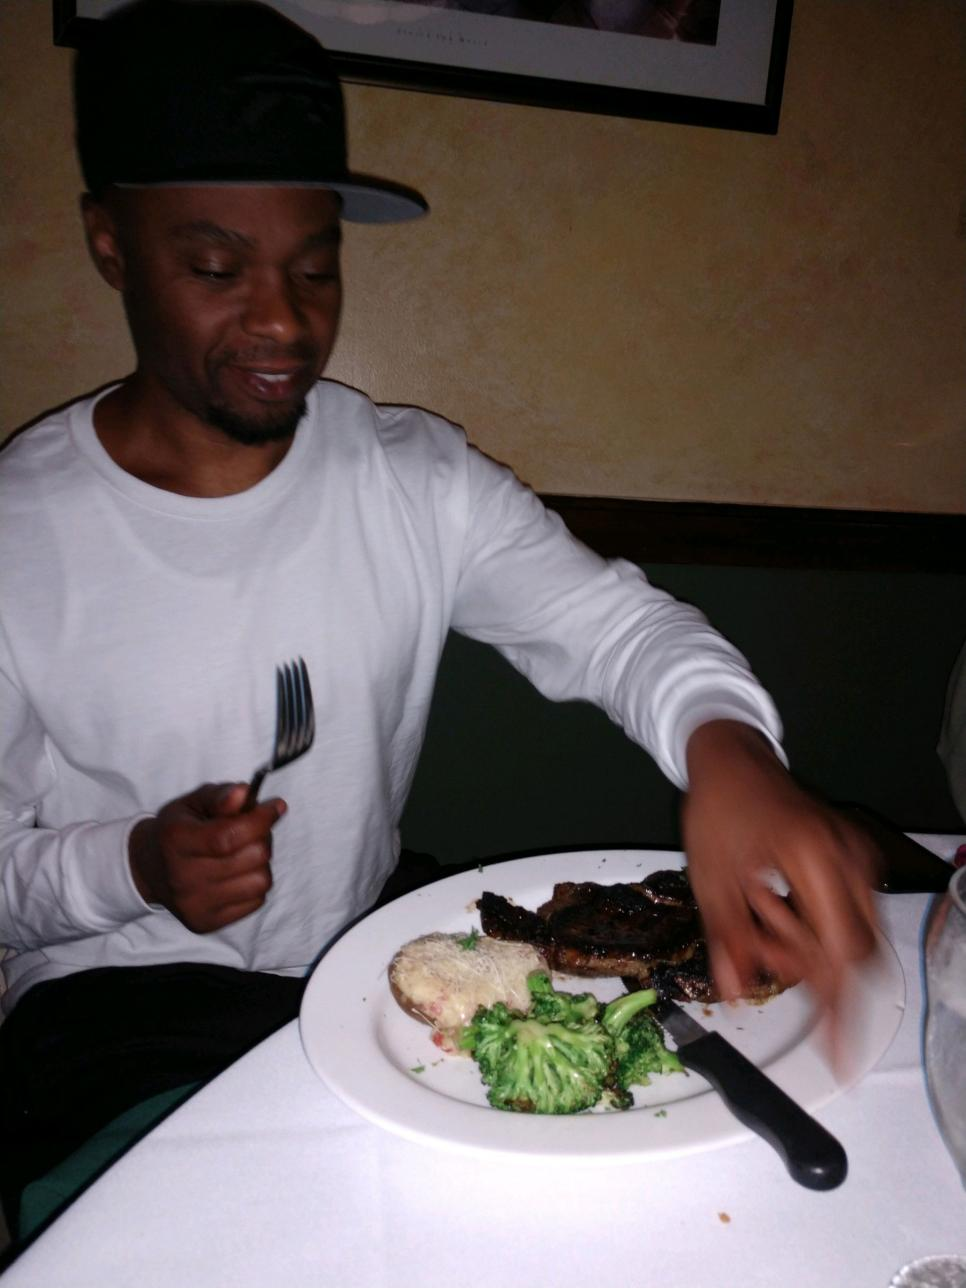 valentino-dixon-steak-dinner.jpg